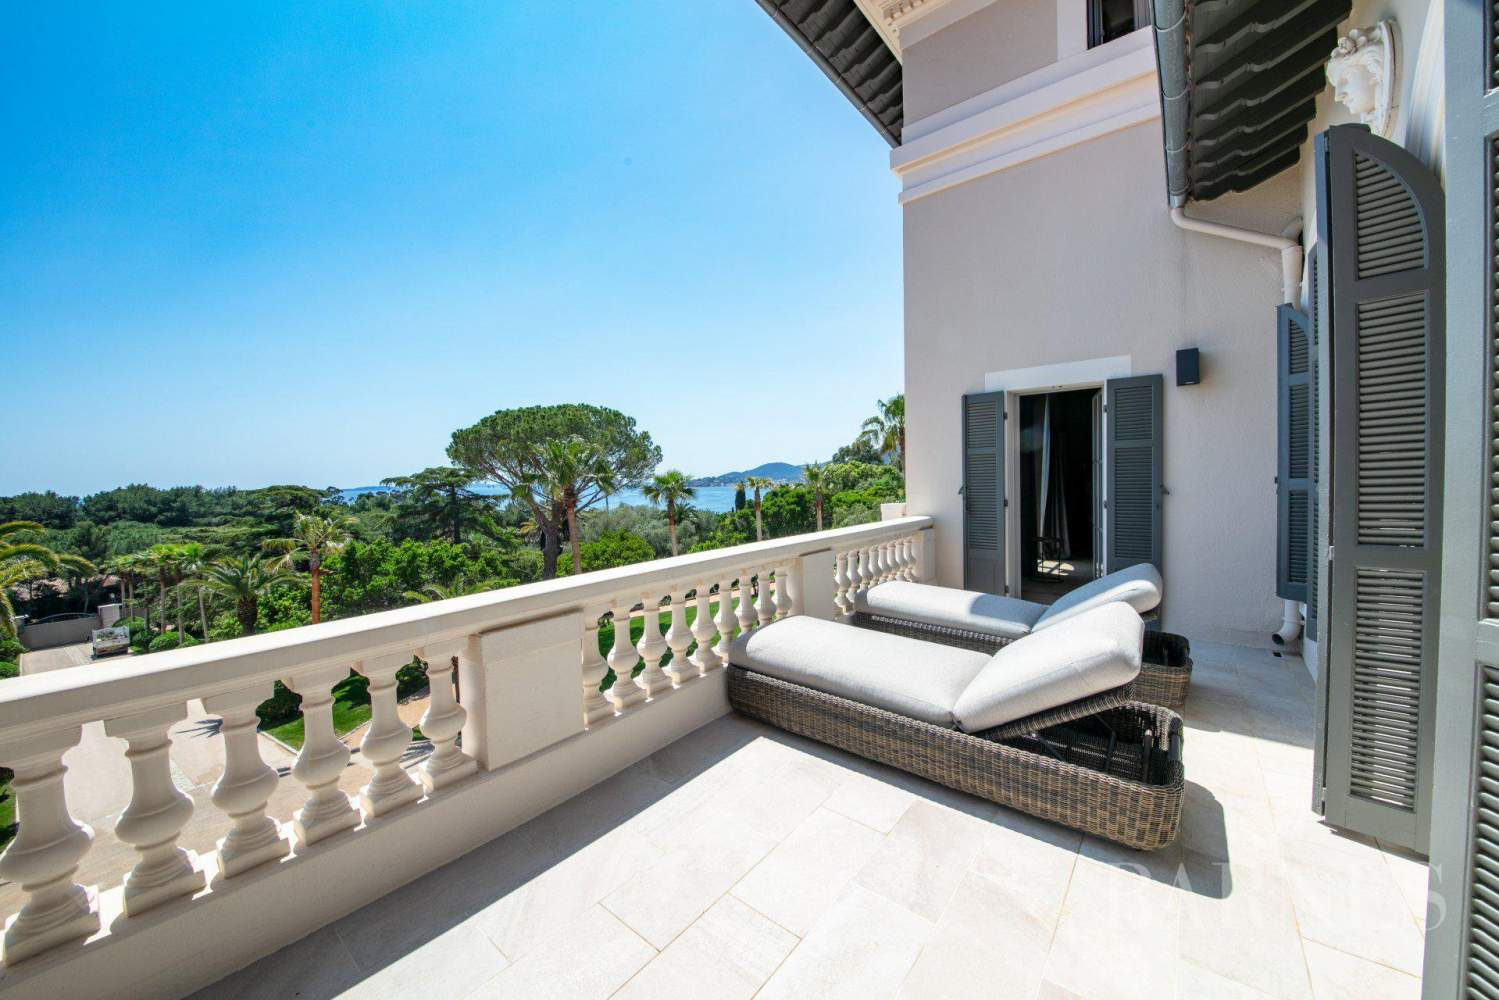 Golfe of Saint-Tropez - Gigaro - 11 bedrooms - Heated pool picture 16